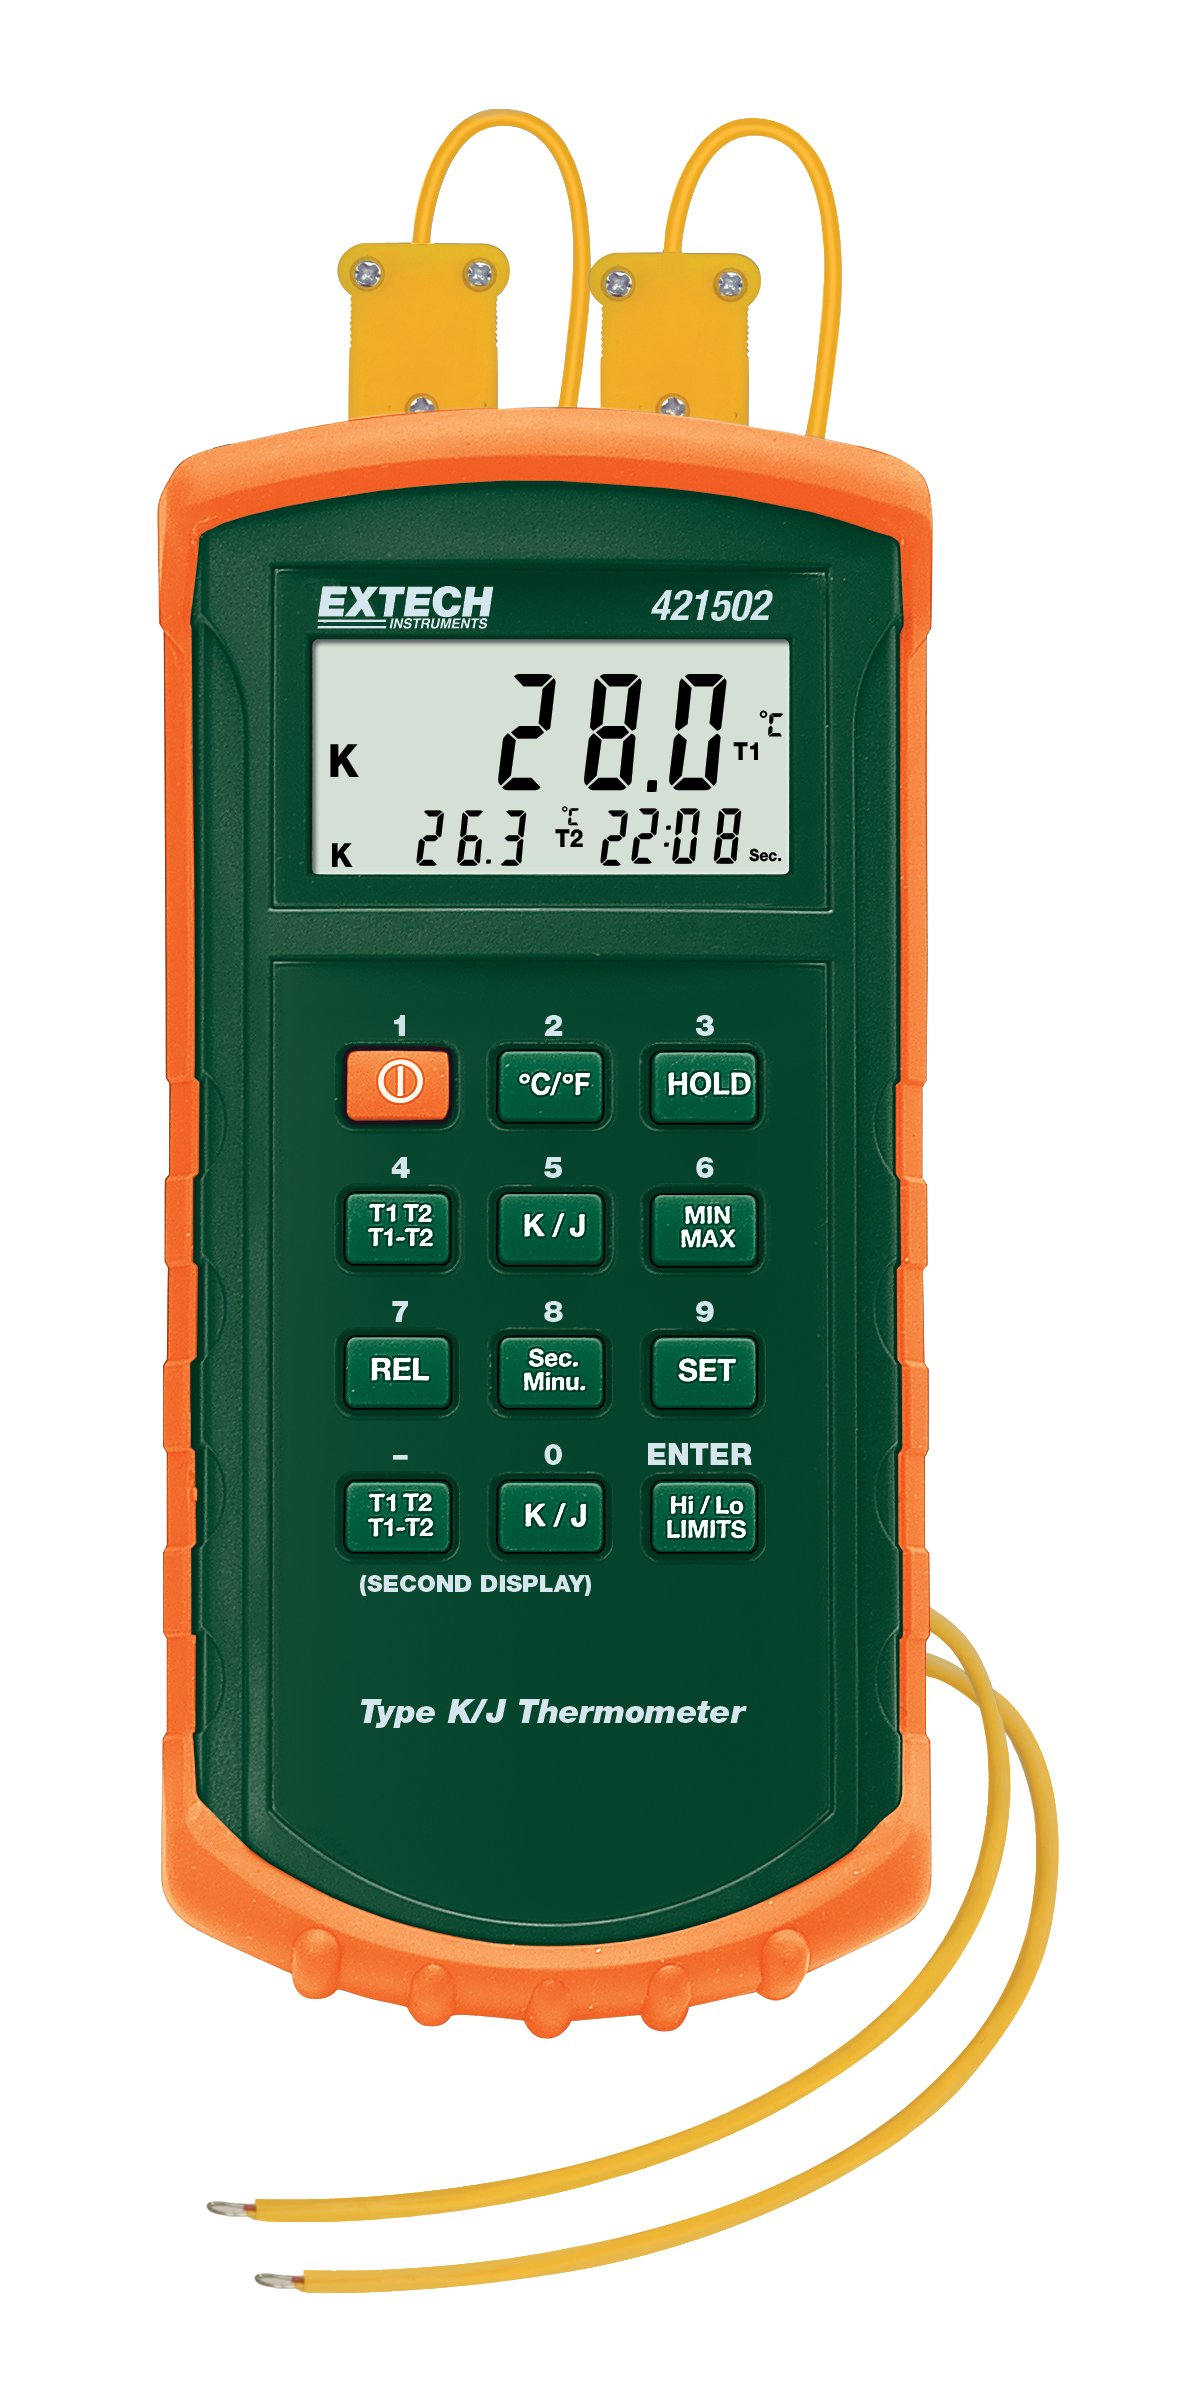 Extech 421502 Type J/K Dual Input Thermometer with Alarm by Extech (Image #1)